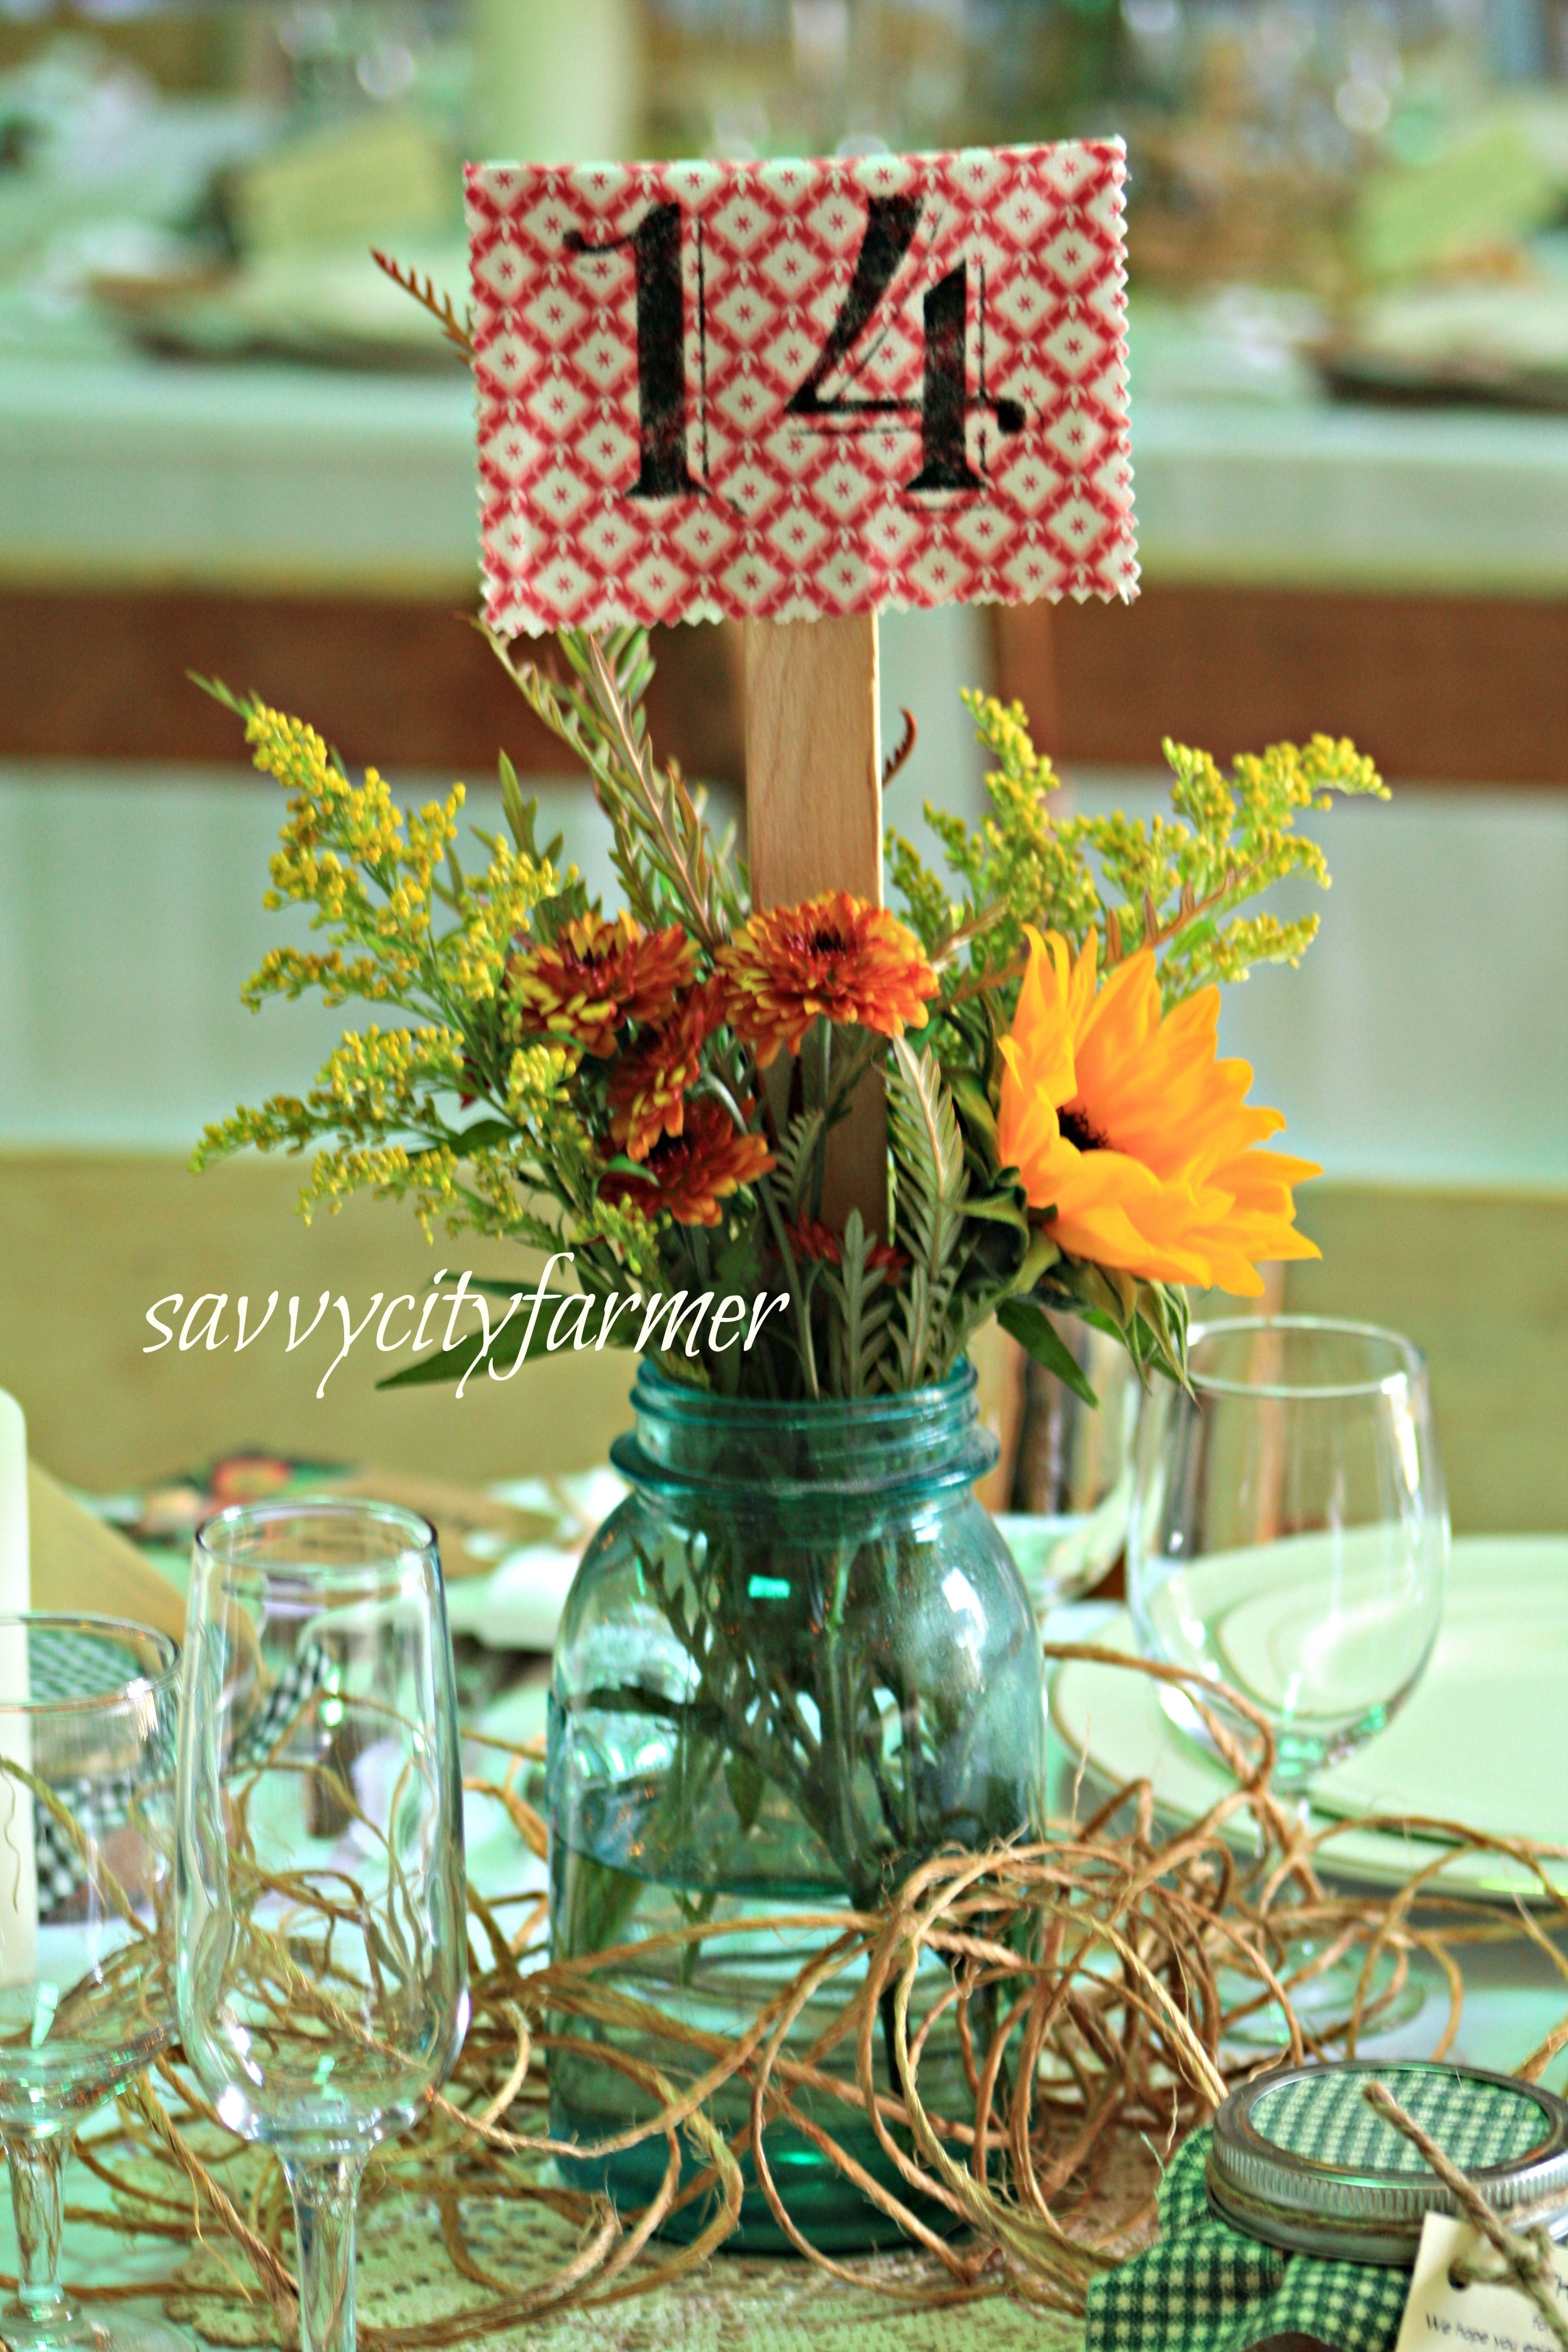 Wedding table numbers these could be cute with material that fits